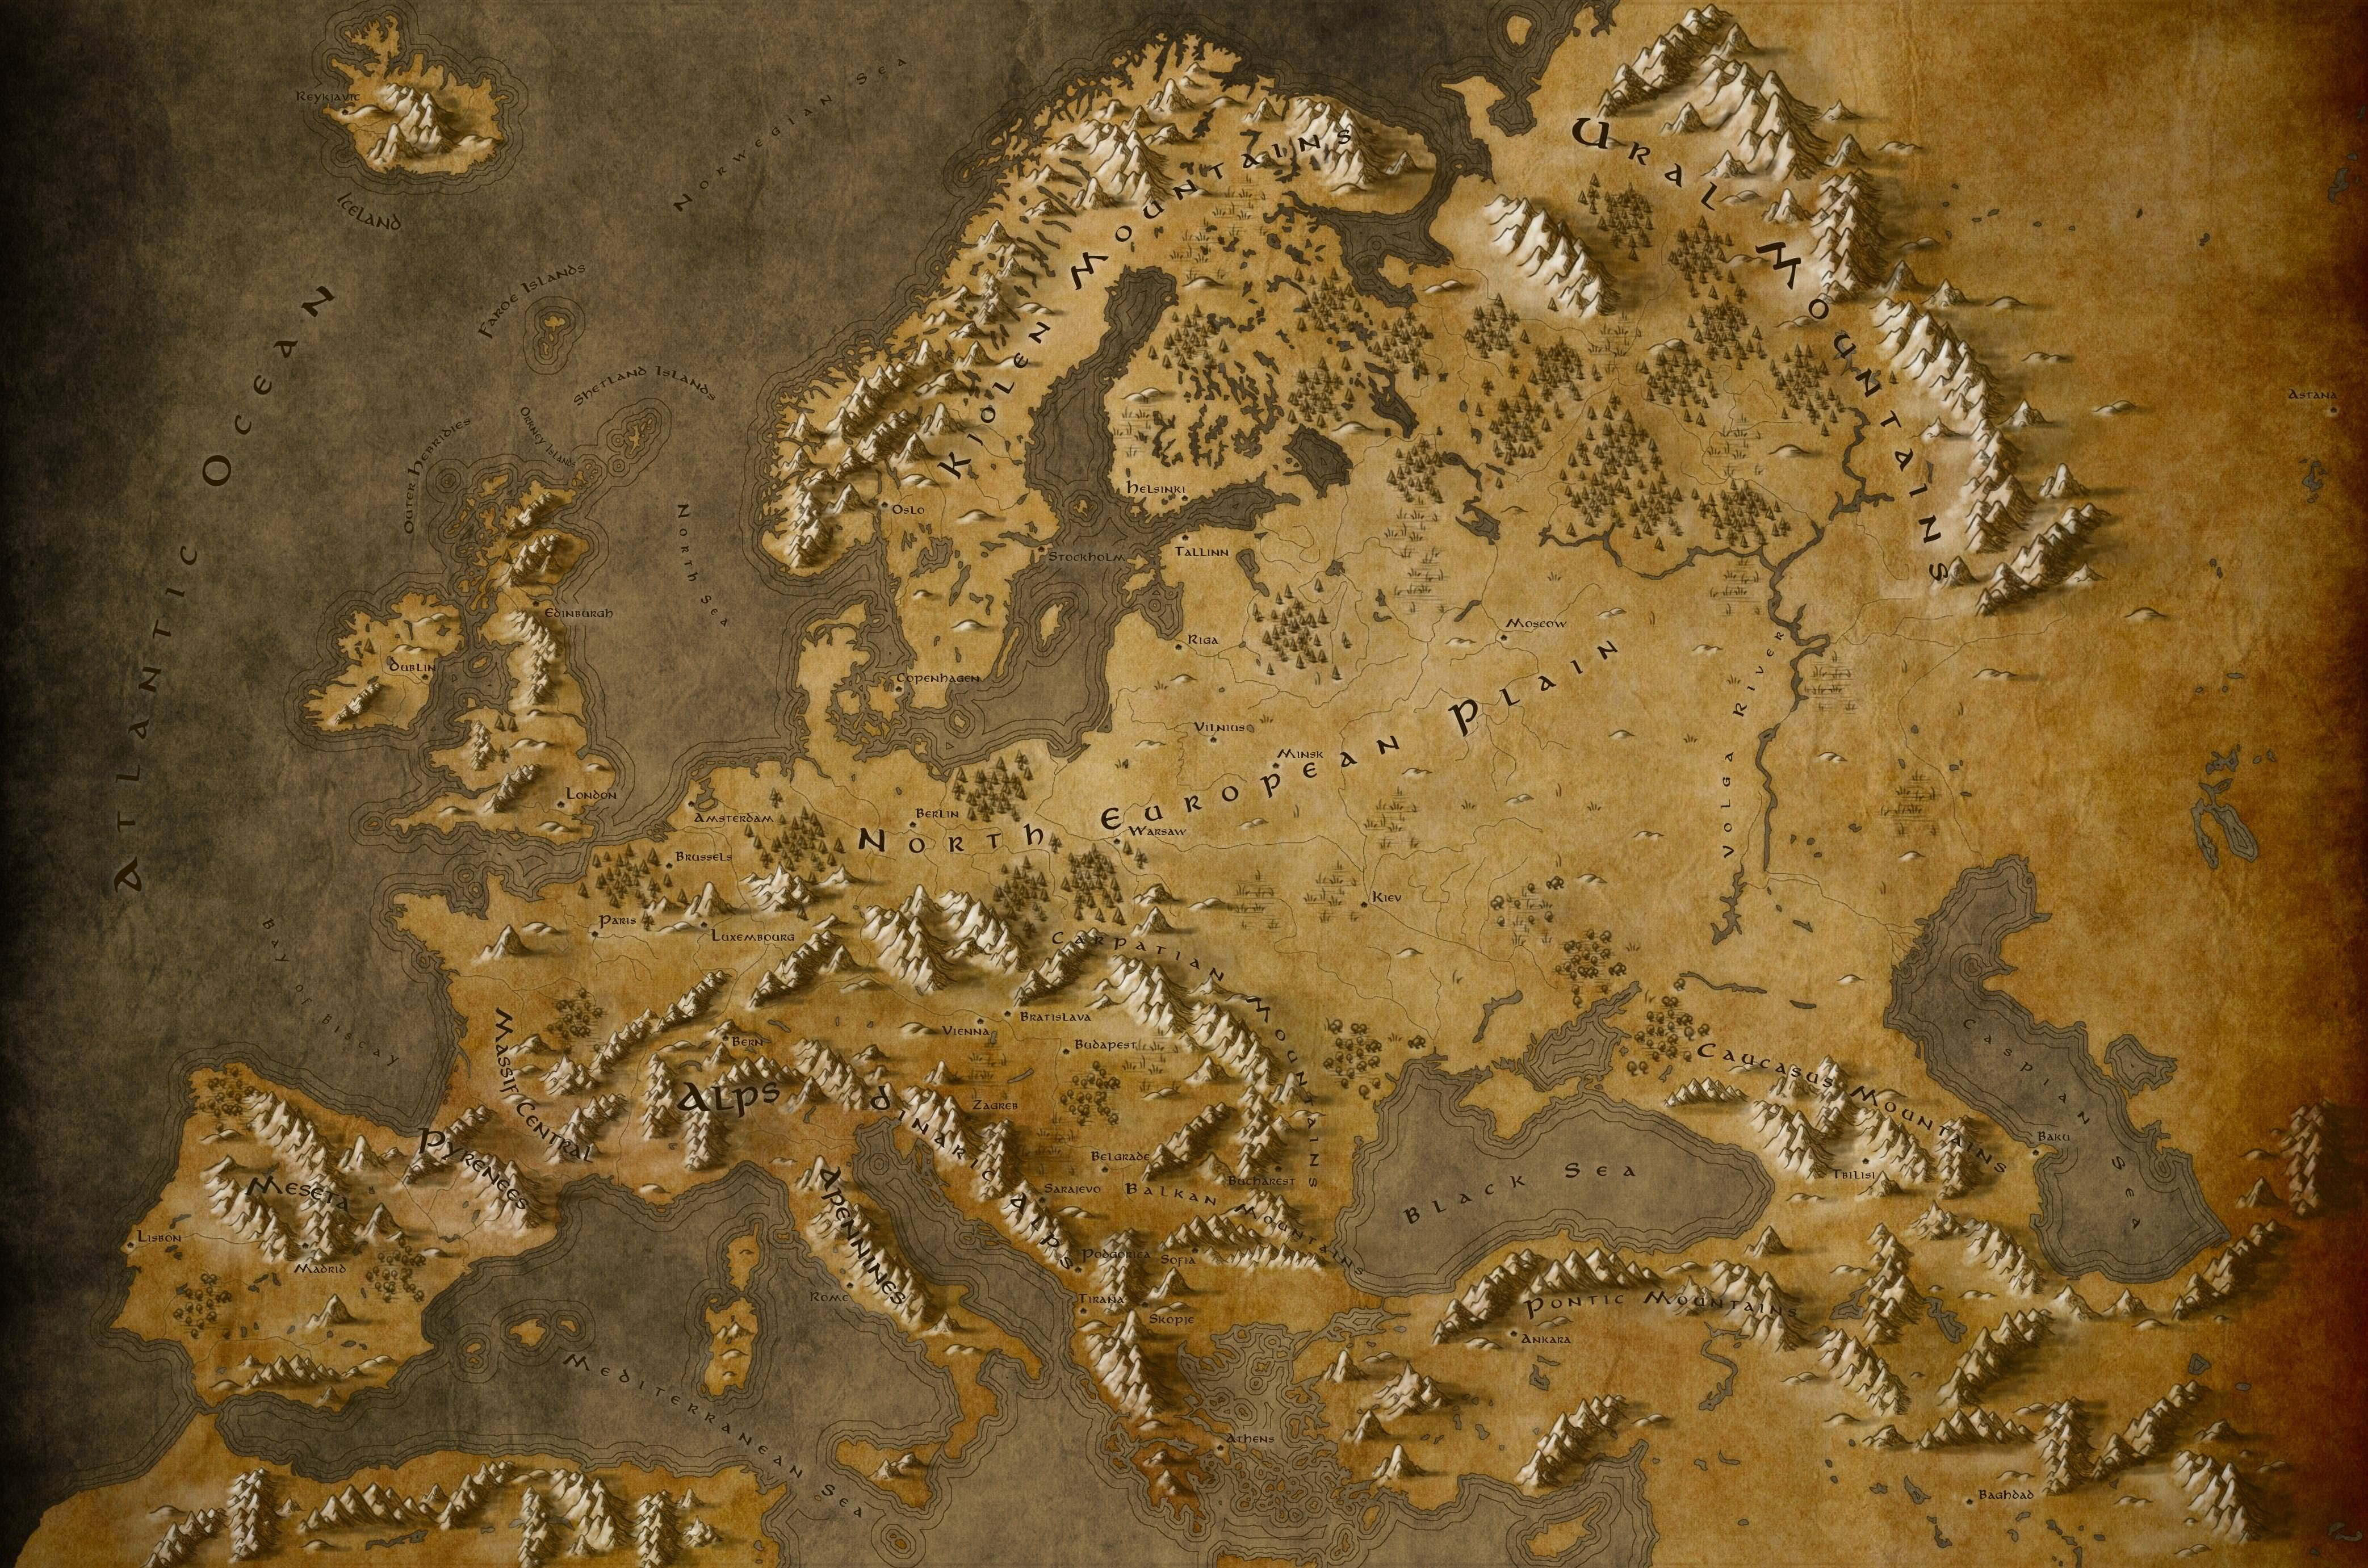 fantasy map of europe Pin by Catherine Marie on News | Europe map, Fantasy map making